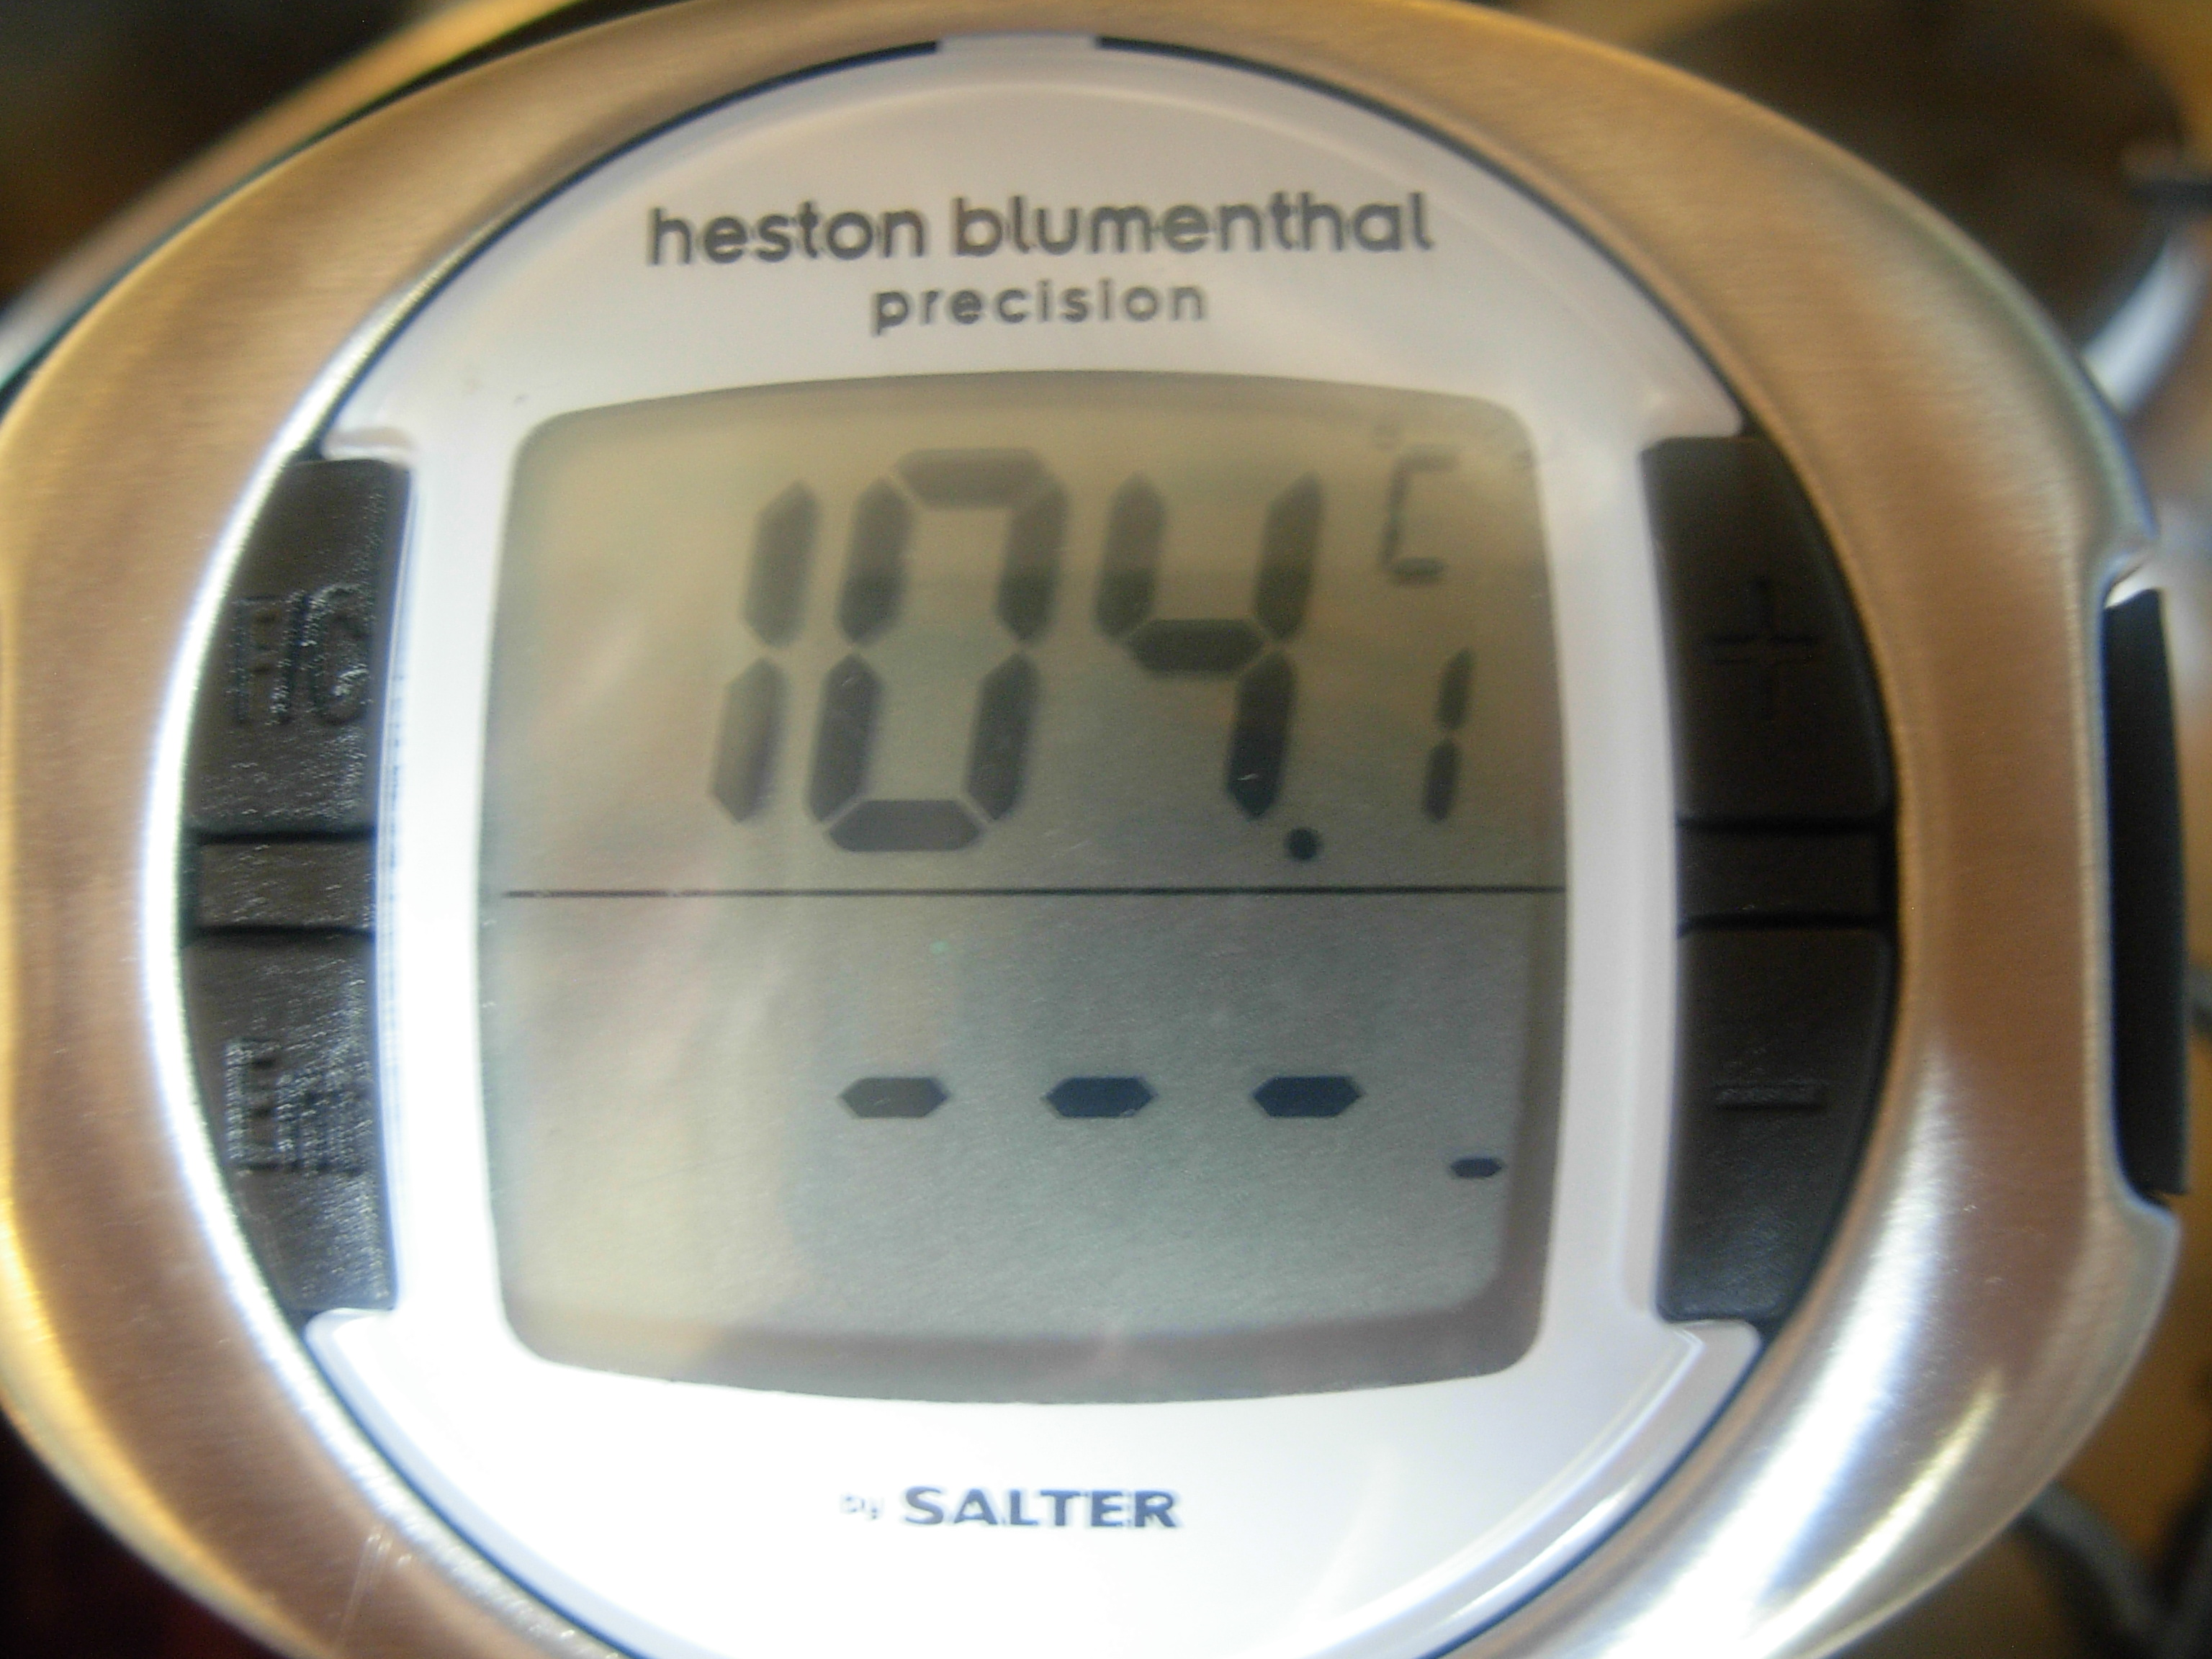 Heston Blumenthal thermometer